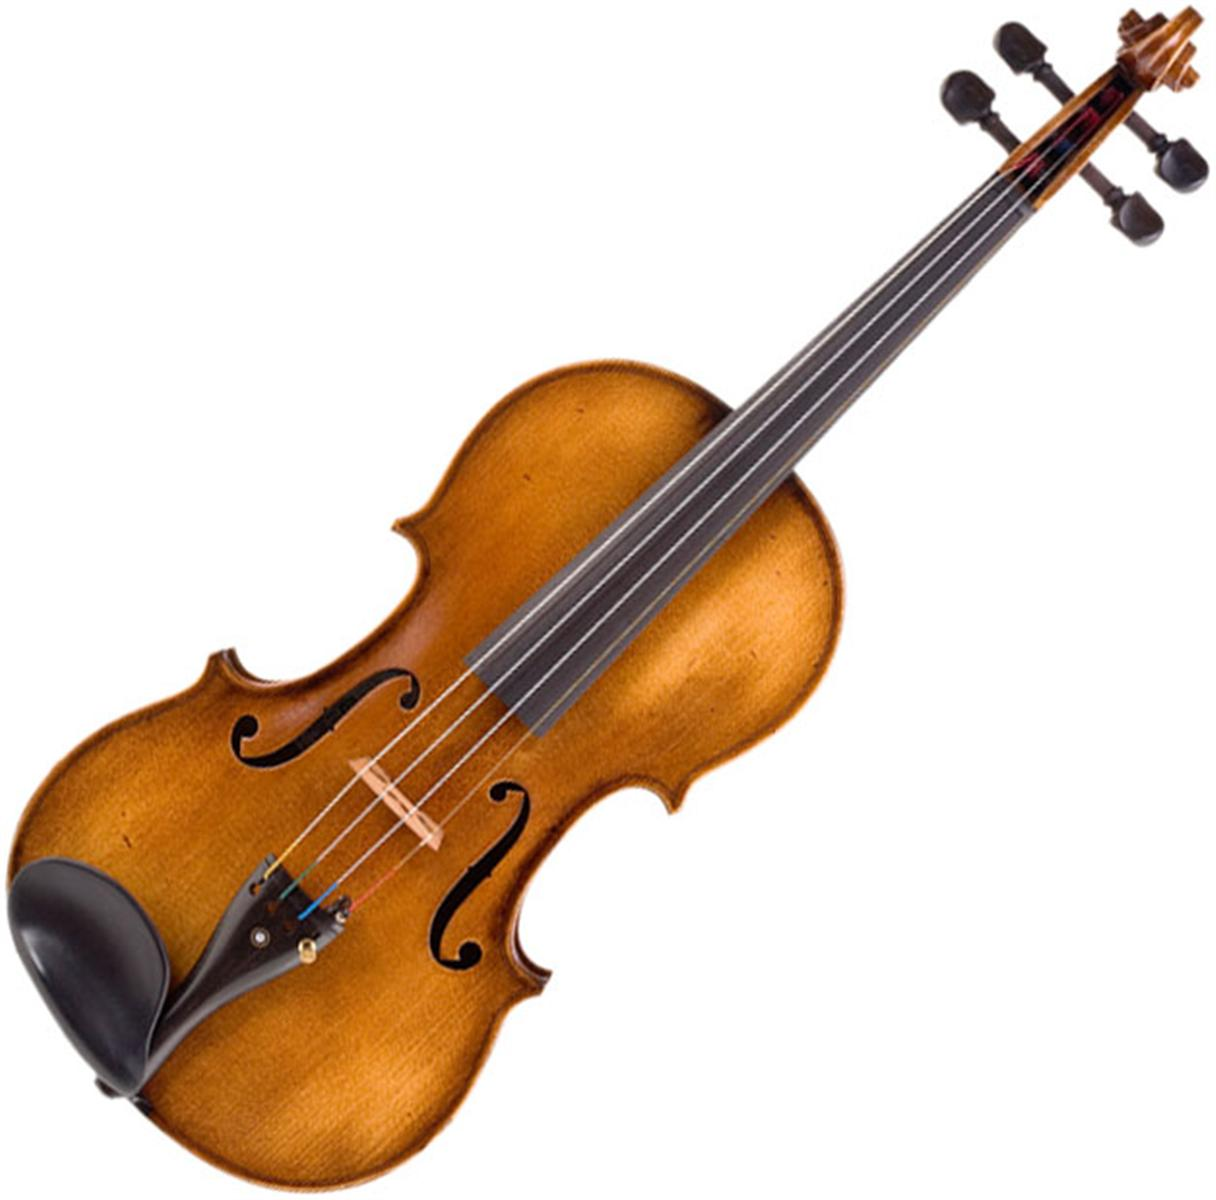 Violin making clipart clipart royalty free download Entertainment Cliparts Violin - Making-The-Web.com clipart royalty free download